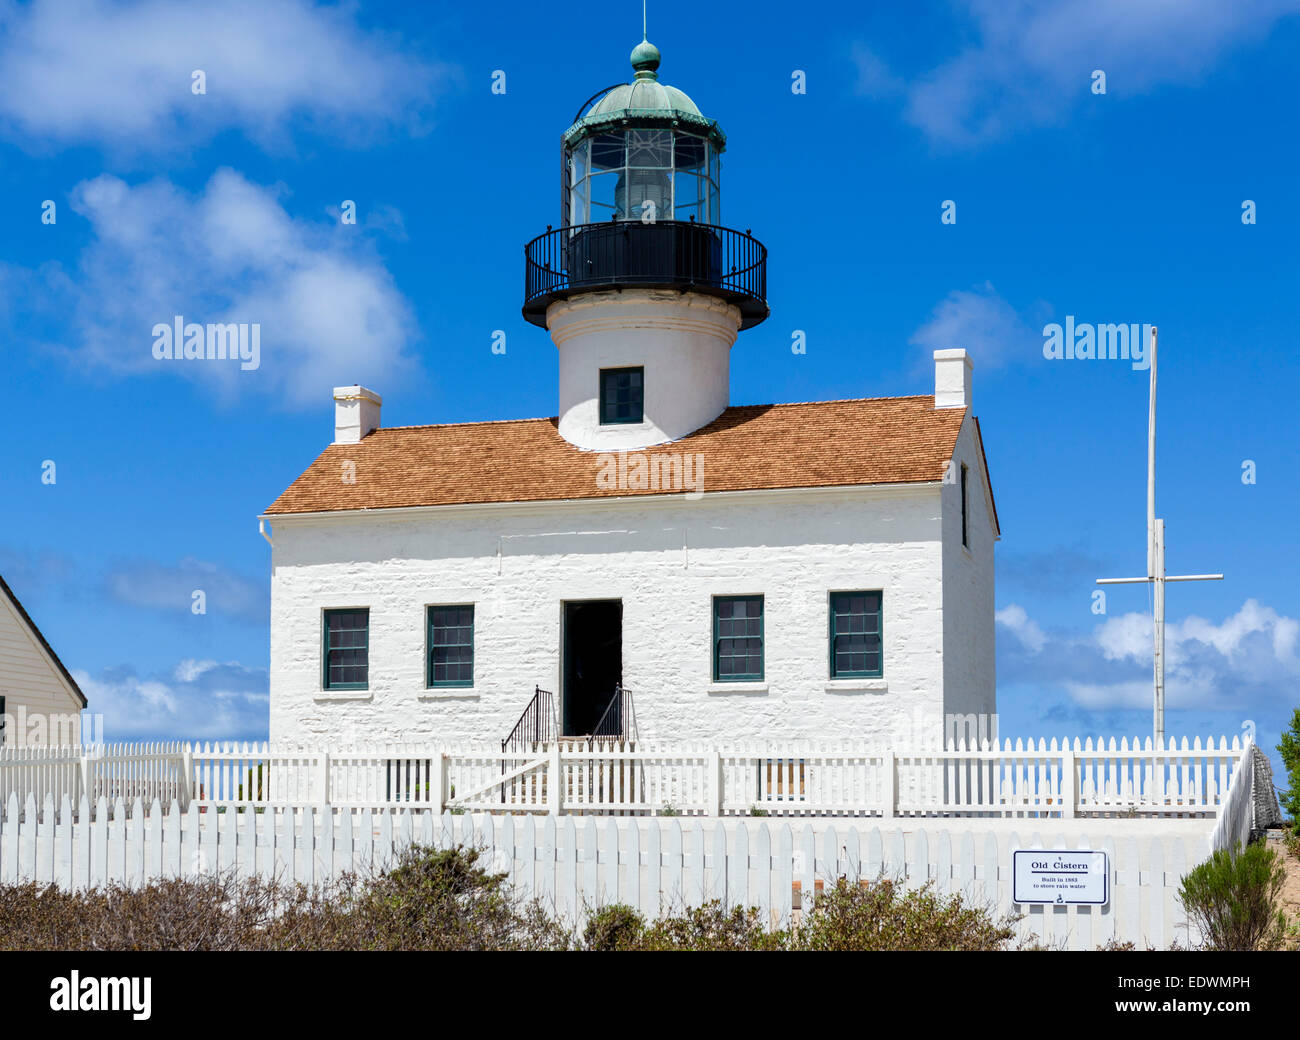 Old Point Loma Lighthouse, Cabrillo National Monument, Point Loma, San Diego, California, USA - Stock Image